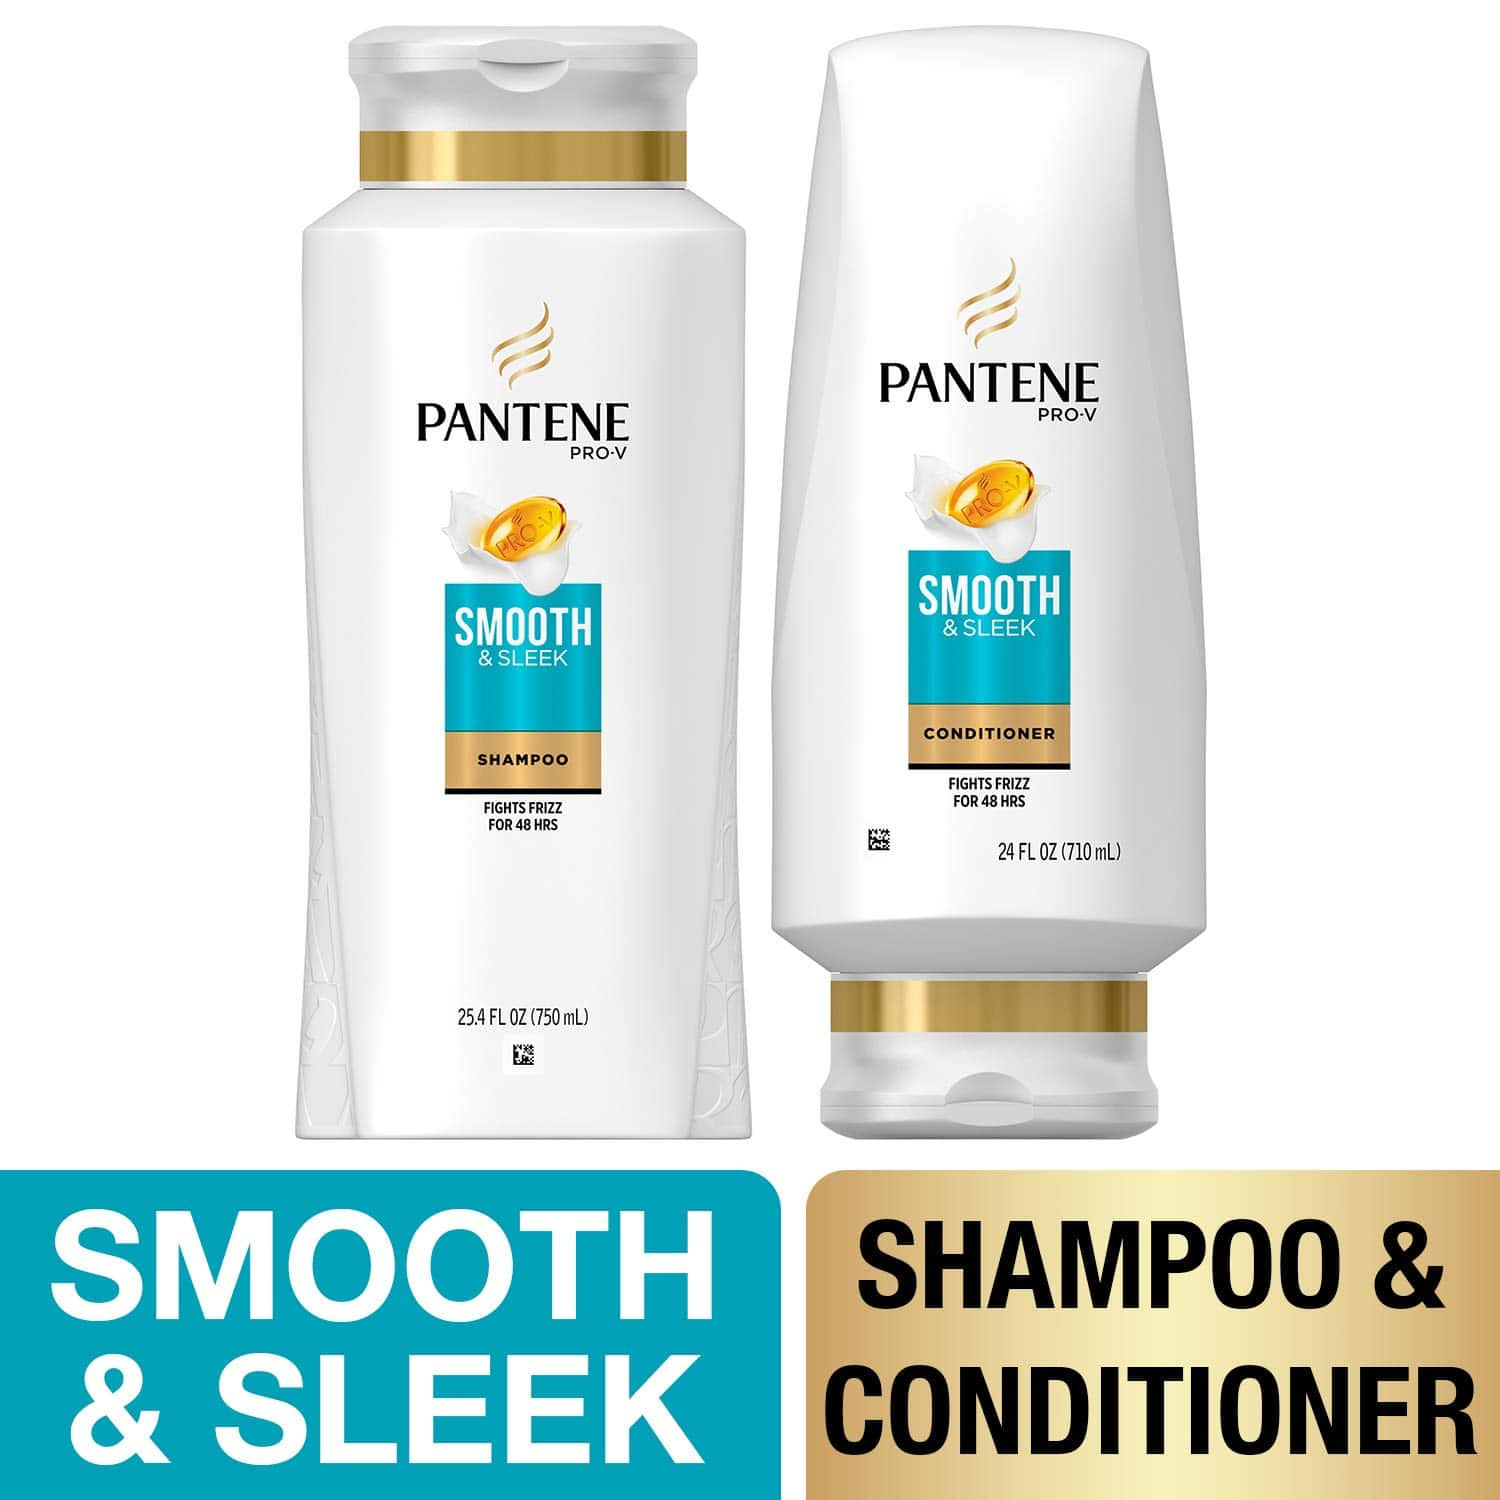 Pantene, Shampoo and Sulfate Free Conditioner Kit, with Argan Oil, Pro-V Smooth and Sleek for Dry Hair, 25.4 oz and 24 oz, Kit: As low as $7.50 w/S&S